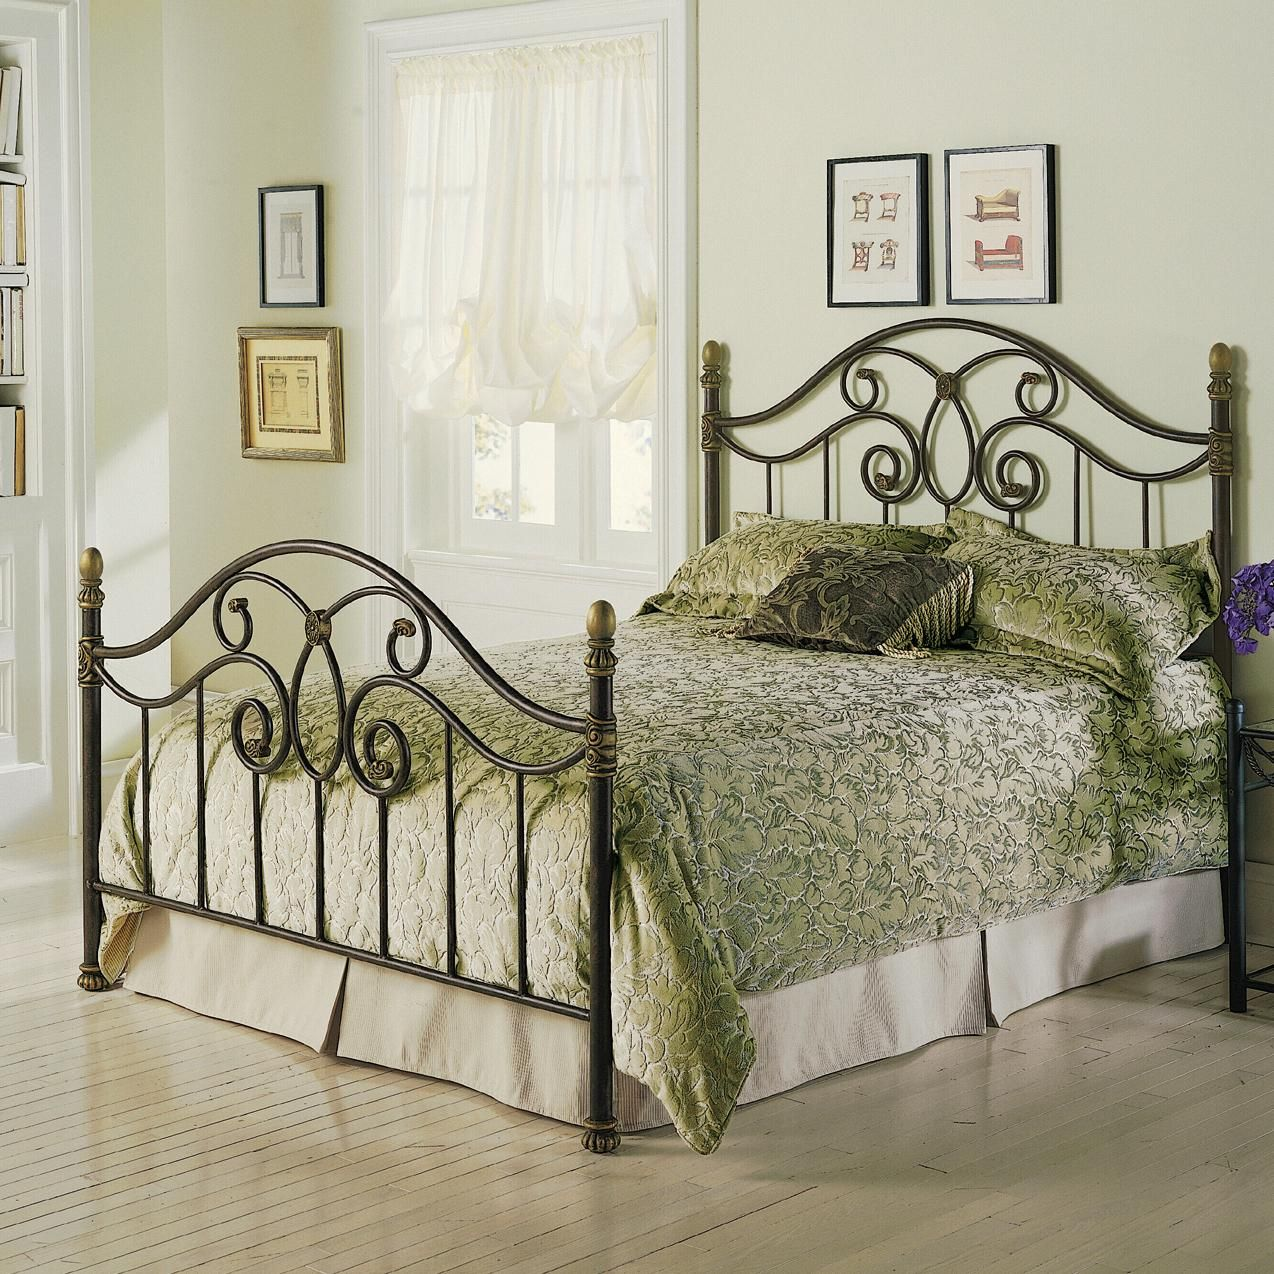 Queen Dynasty Duo Panel Bed styling, Headboards for beds